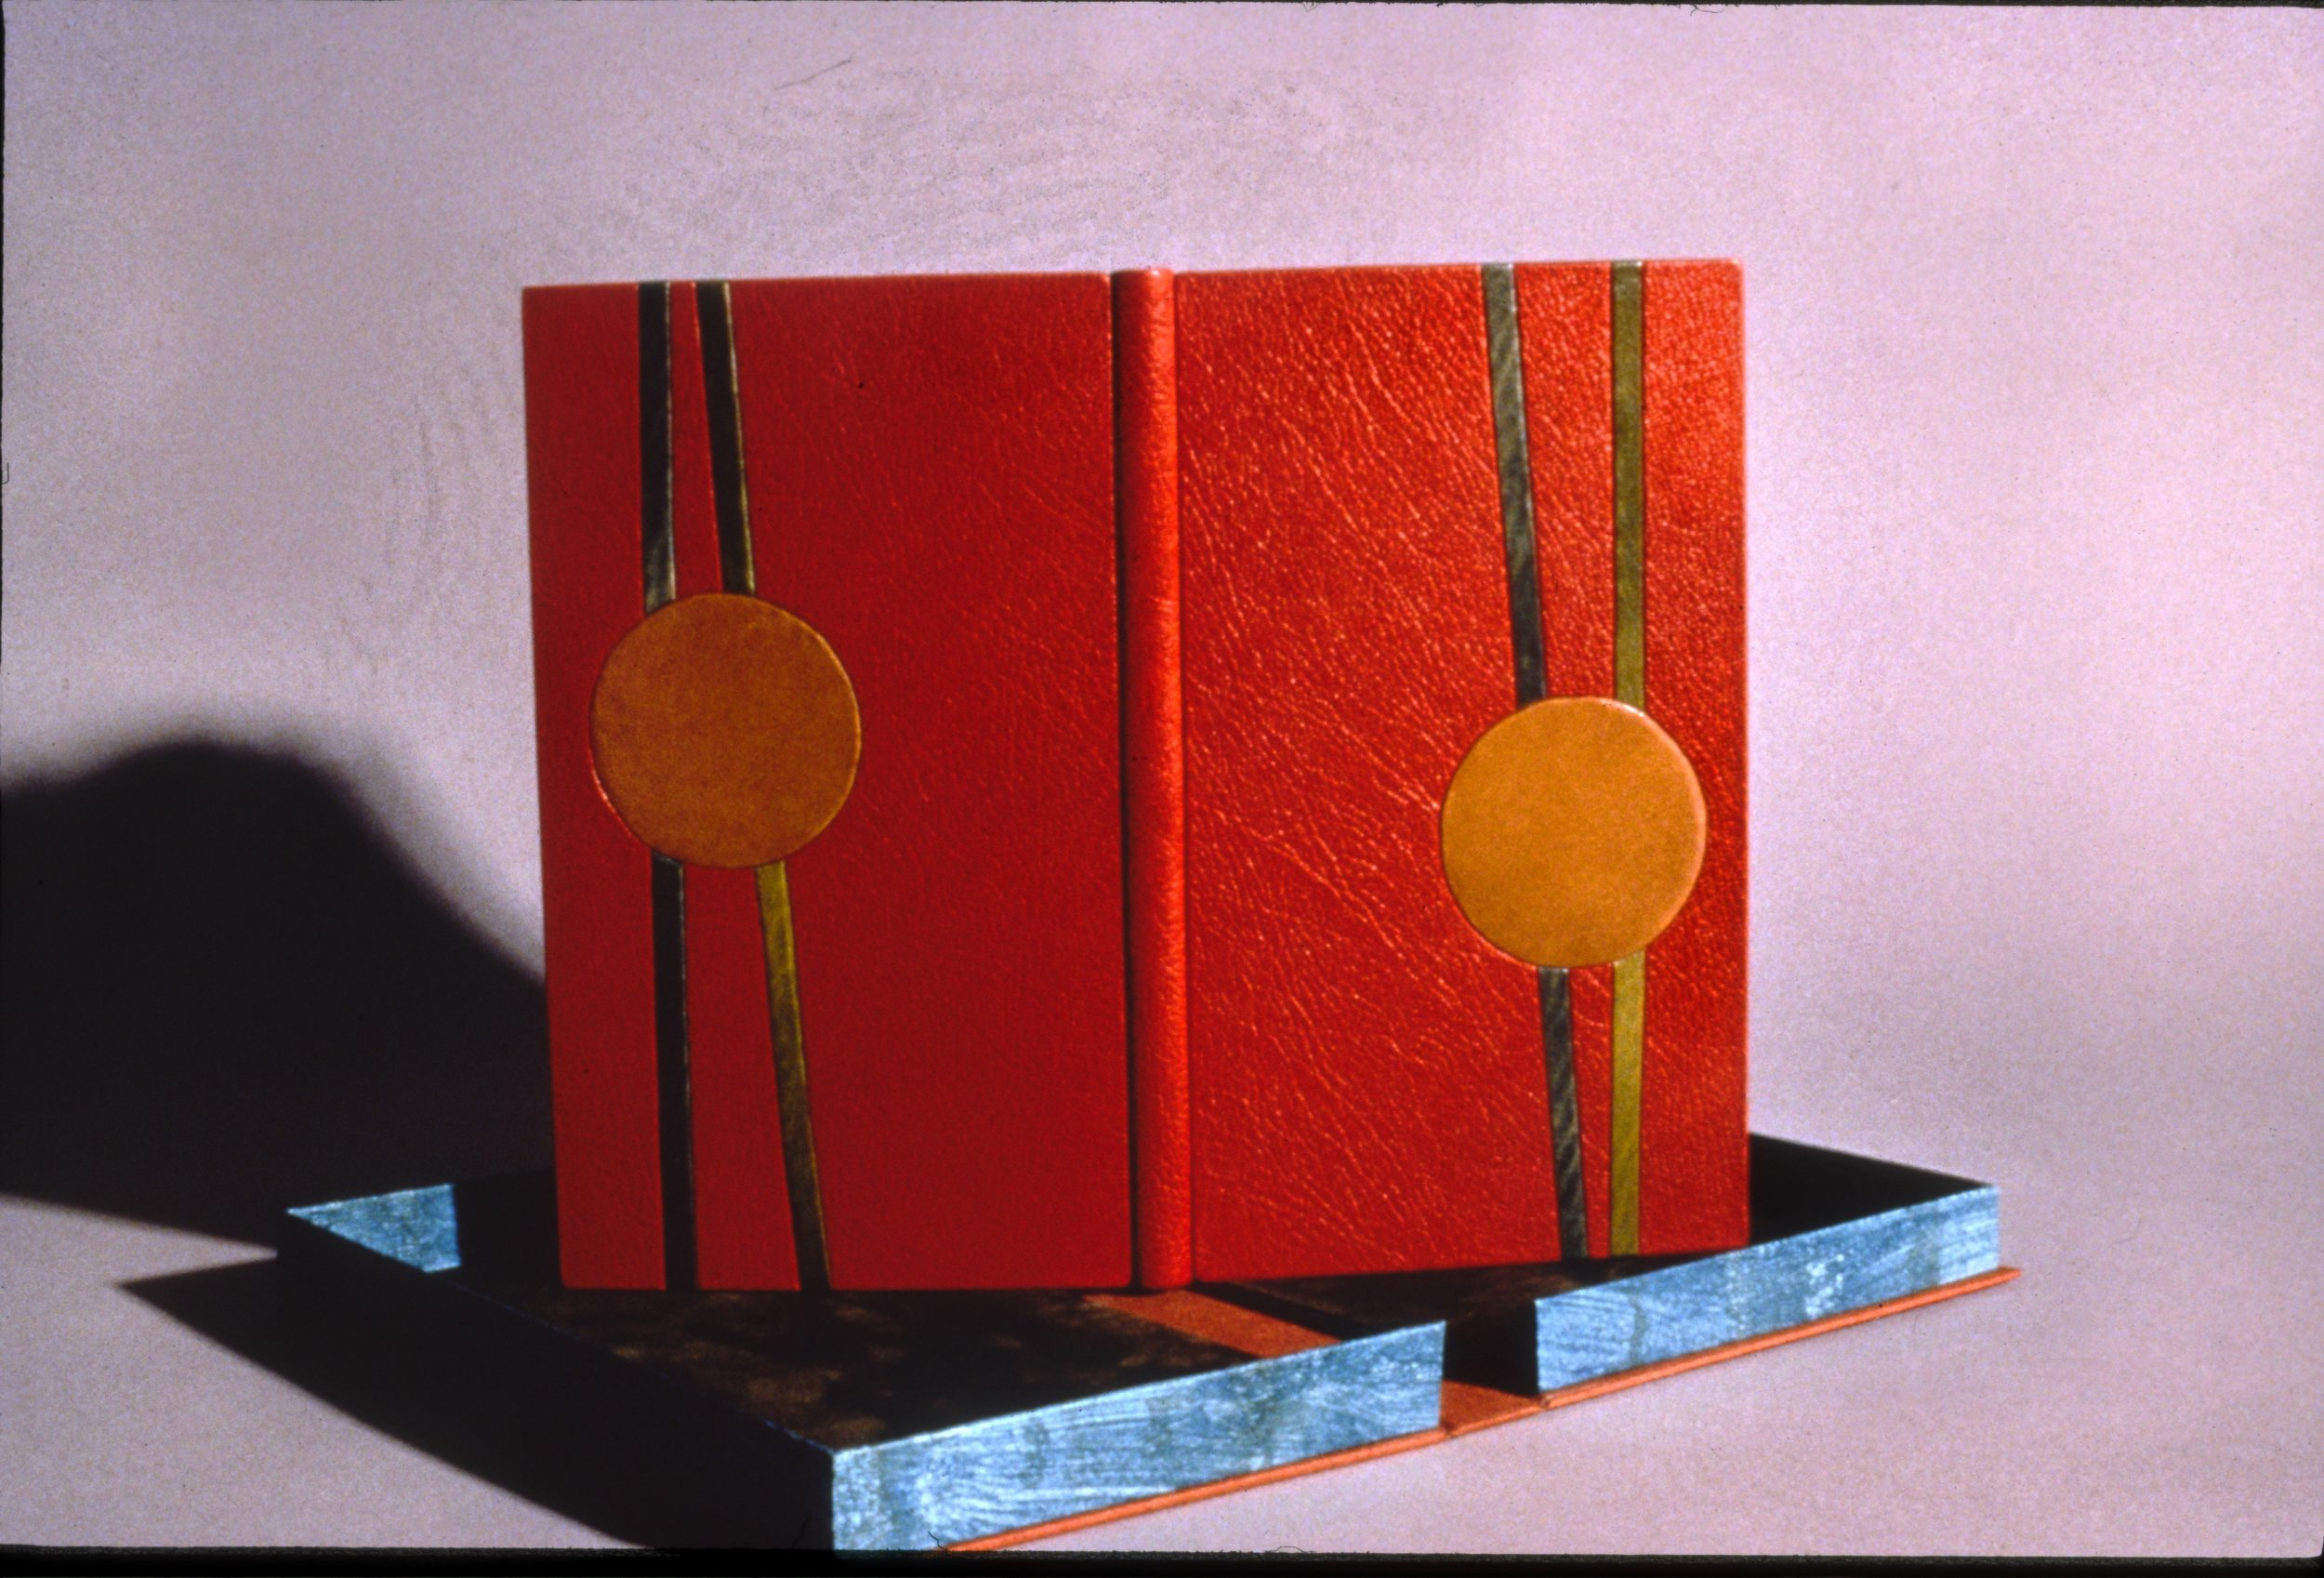 When We Were Here Together,Kenneth Patchen - This first edition by New Directions Press was rebound in full leather, in the French tight back style with hand dyed unbleached calf inlays mimicking the original dust cover design. The linen clamshell protective container is lined in suede.